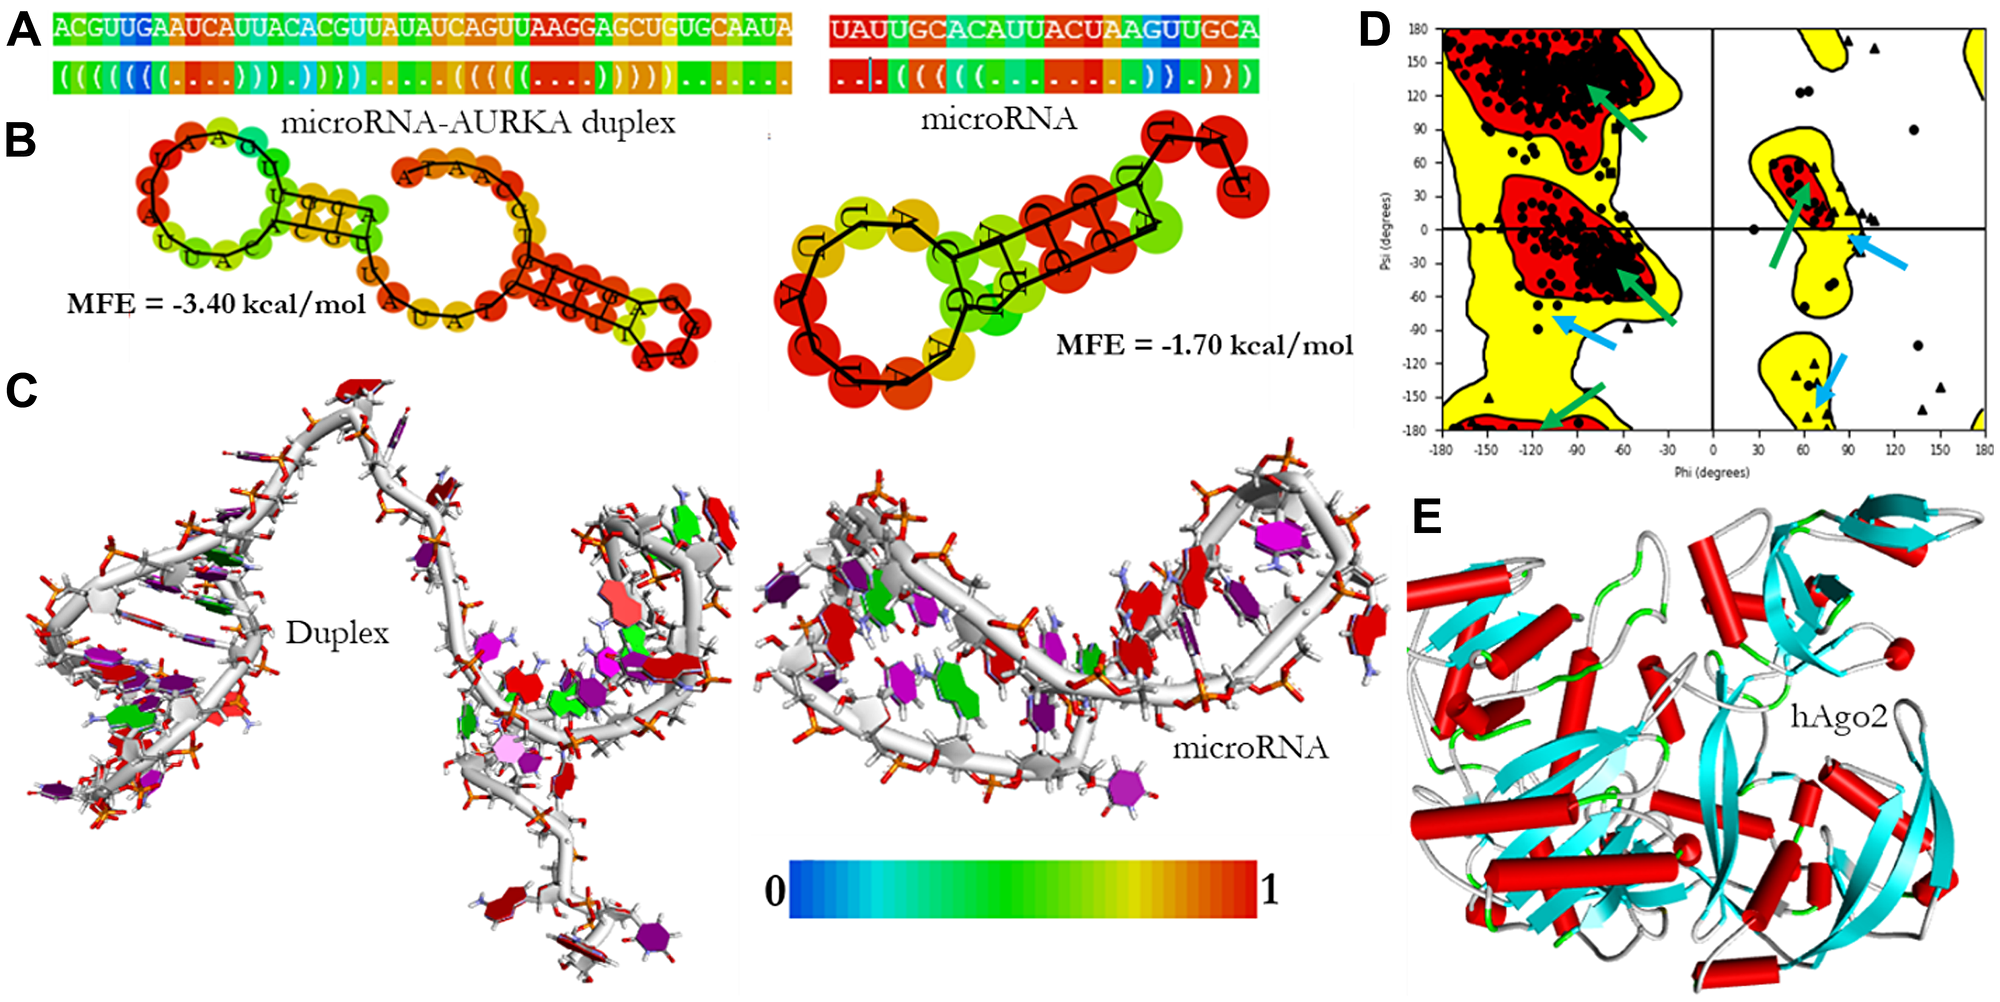 The structural models of microRNA and microRNA-AURKA duplex.